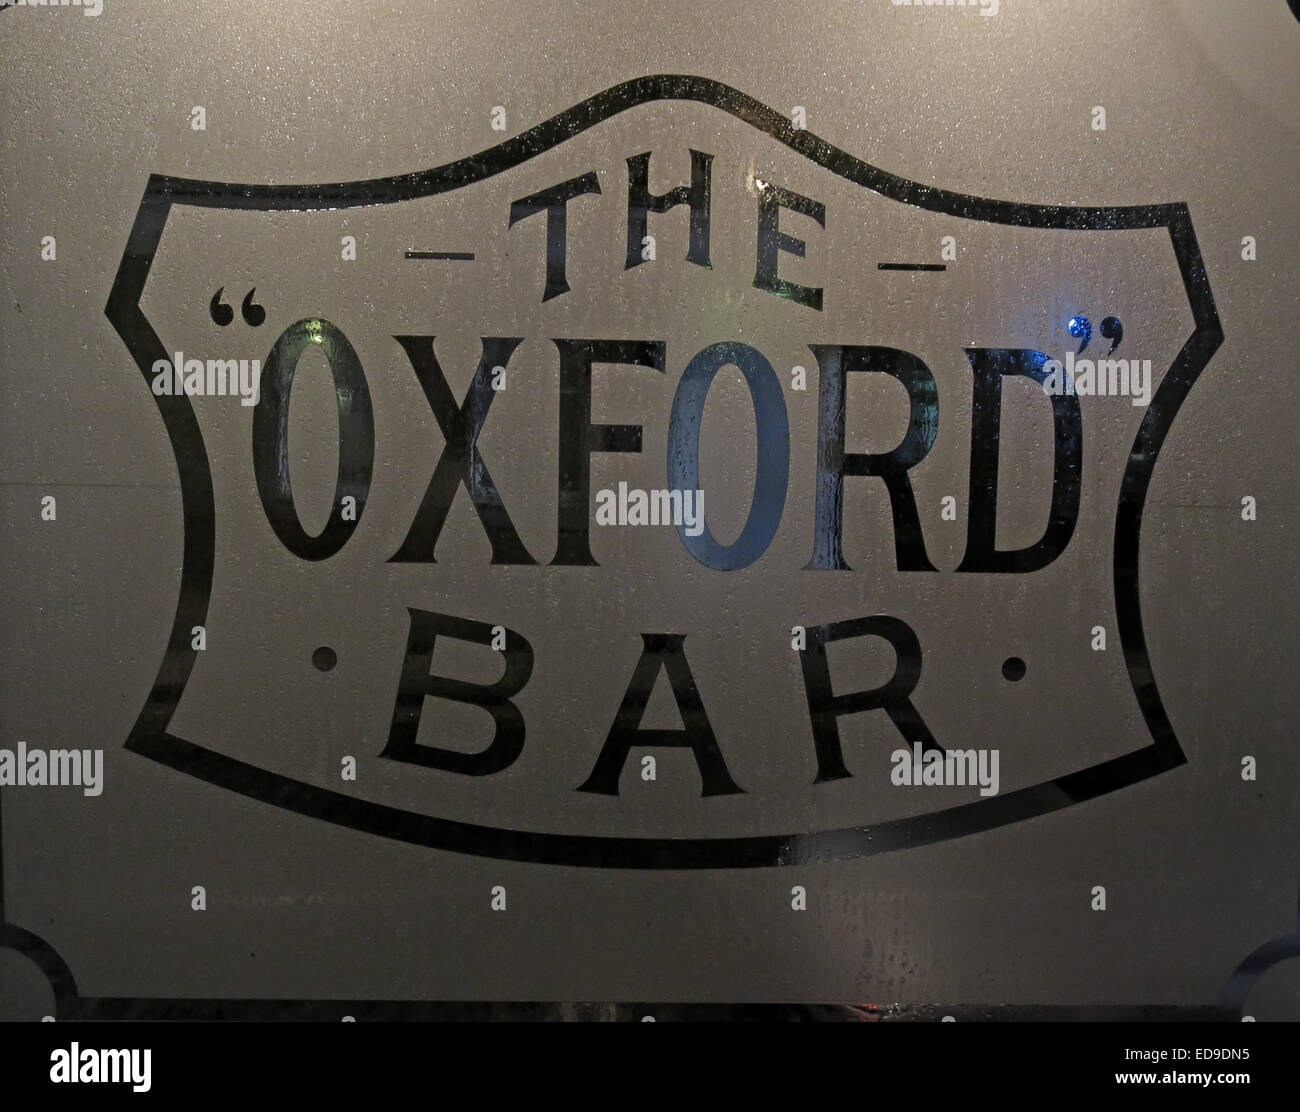 Window of The Oxford Bar, Young St, New Town, Edinburgh, Scotland, UK - Featured in Ian Rankin's Inspector Rebus - Stock Image